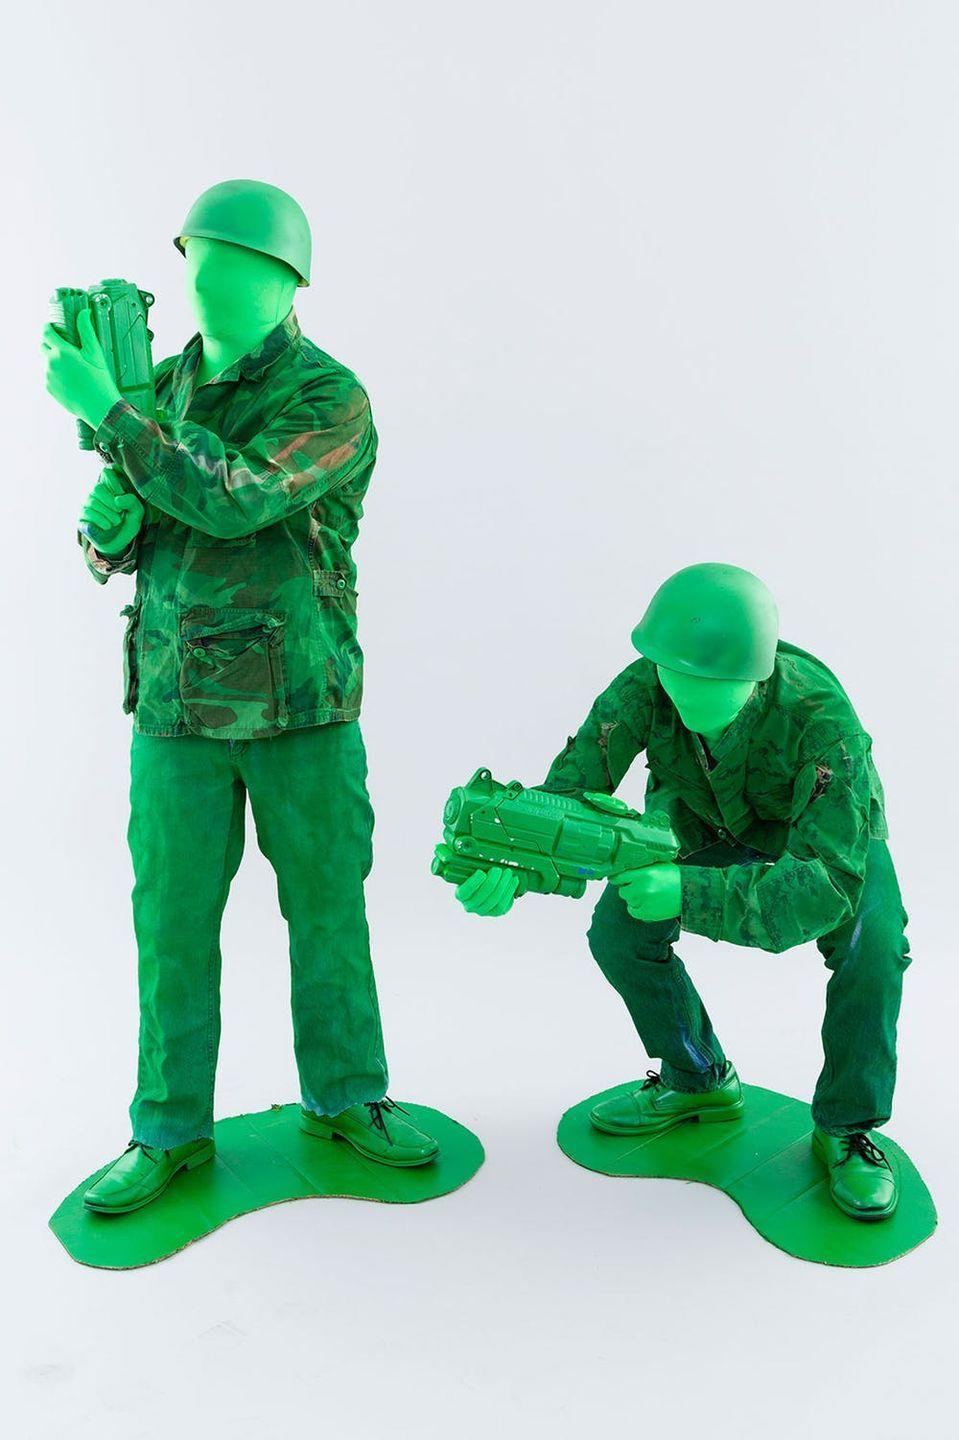 """<p>Green spray paint turns thrift store duds into the (army) squad goals. Leave no man behind! </p><p><em><a href=""""https://www.brit.co/gay-couple-halloween-costumes/"""" rel=""""nofollow noopener"""" target=""""_blank"""" data-ylk=""""slk:Get the tutorial at Brit + Co »"""" class=""""link rapid-noclick-resp"""">Get the tutorial at Brit + Co »</a></em> </p>"""